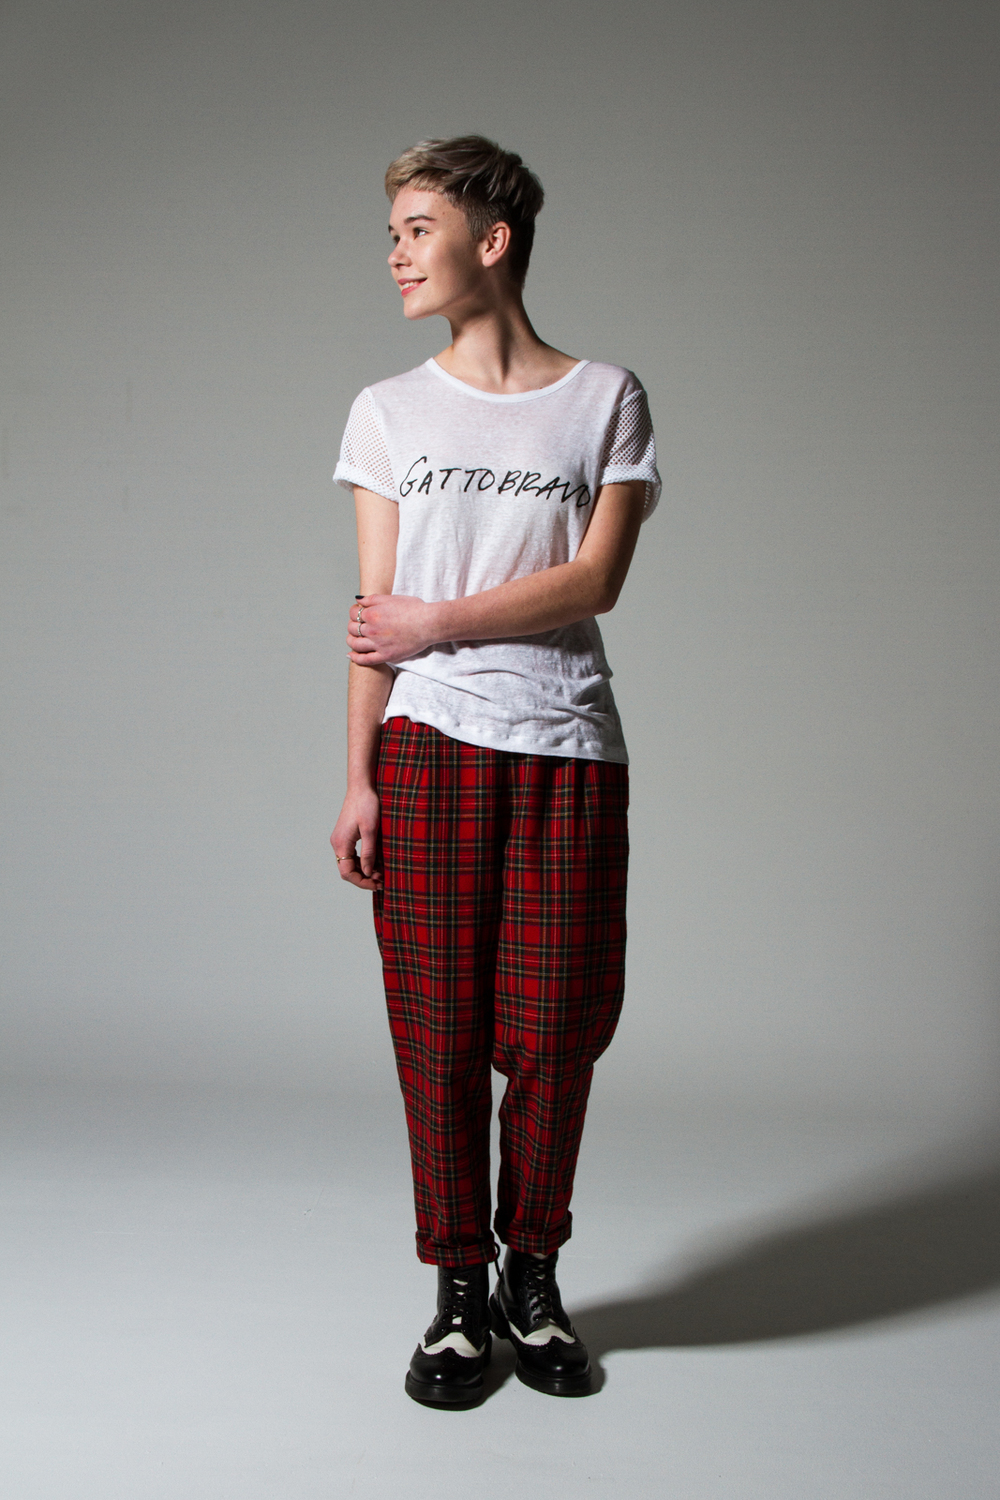 Gattobravo T Shirt $129 with opshop pants & Dr Martens